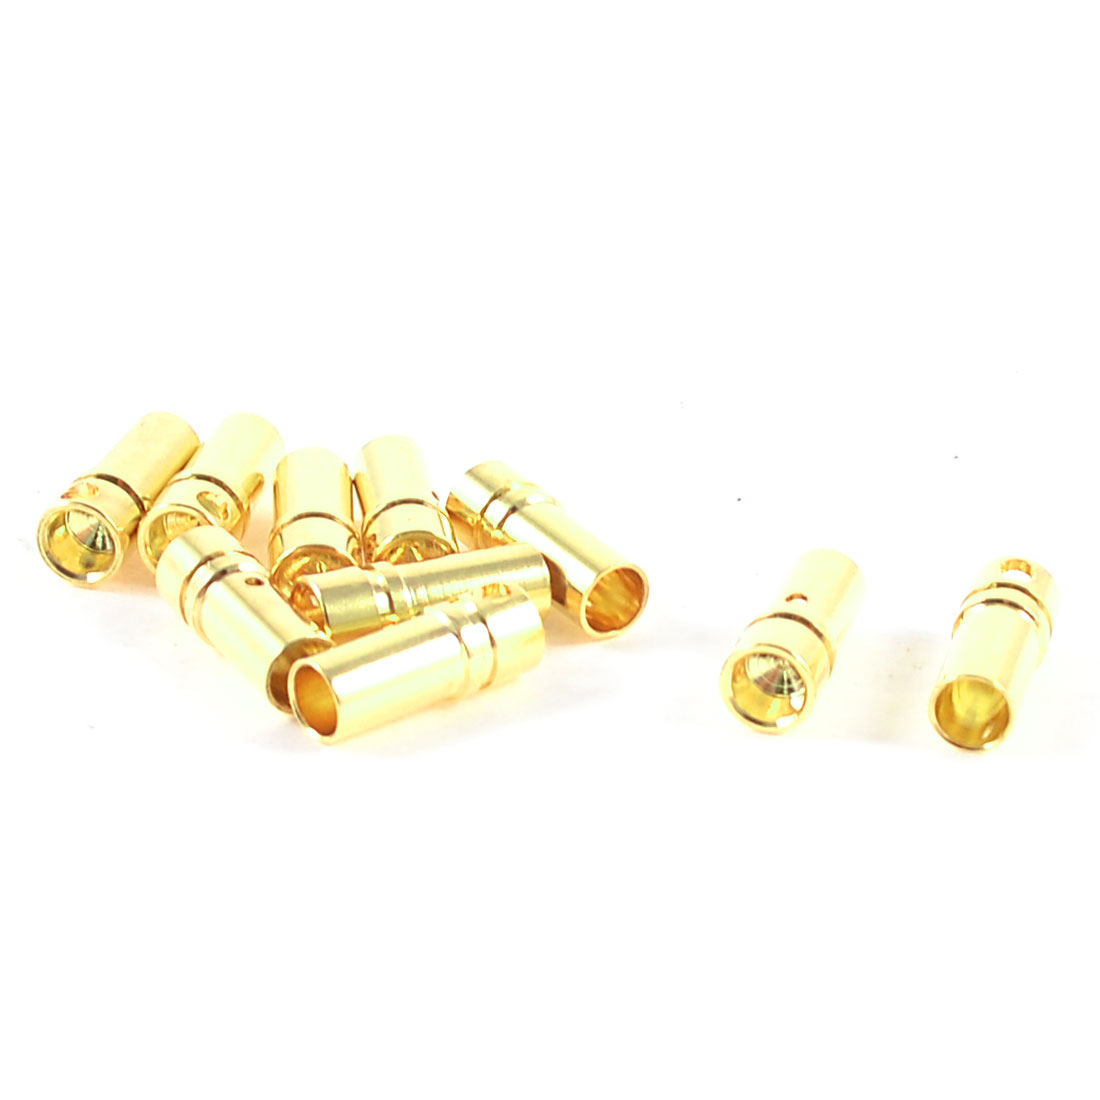 10 Pcs Gold Tone Metal RC Cone Female Connector 3.5mm